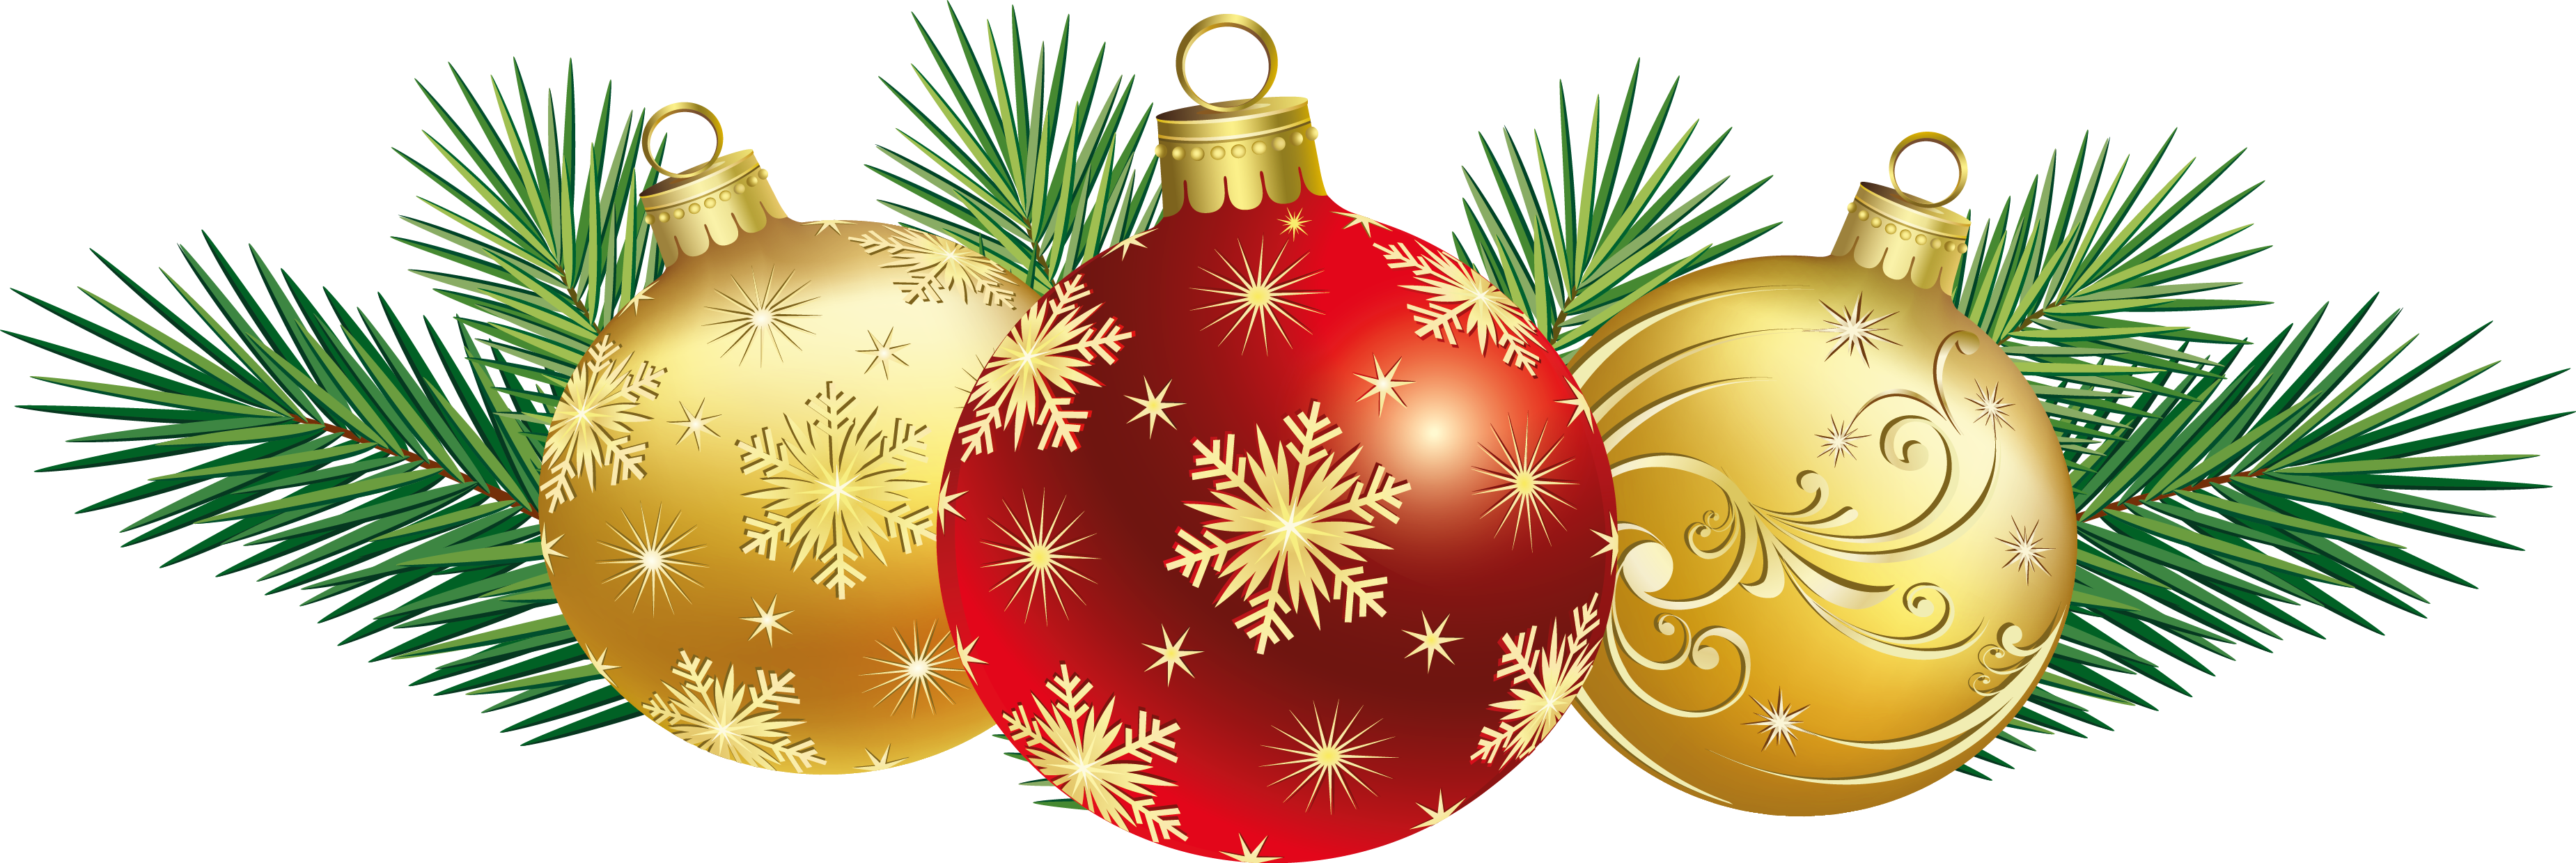 Christmas row clipart clip freeuse download Free Christmas Decorations Cliparts, Download Free Clip Art, Free ... clip freeuse download